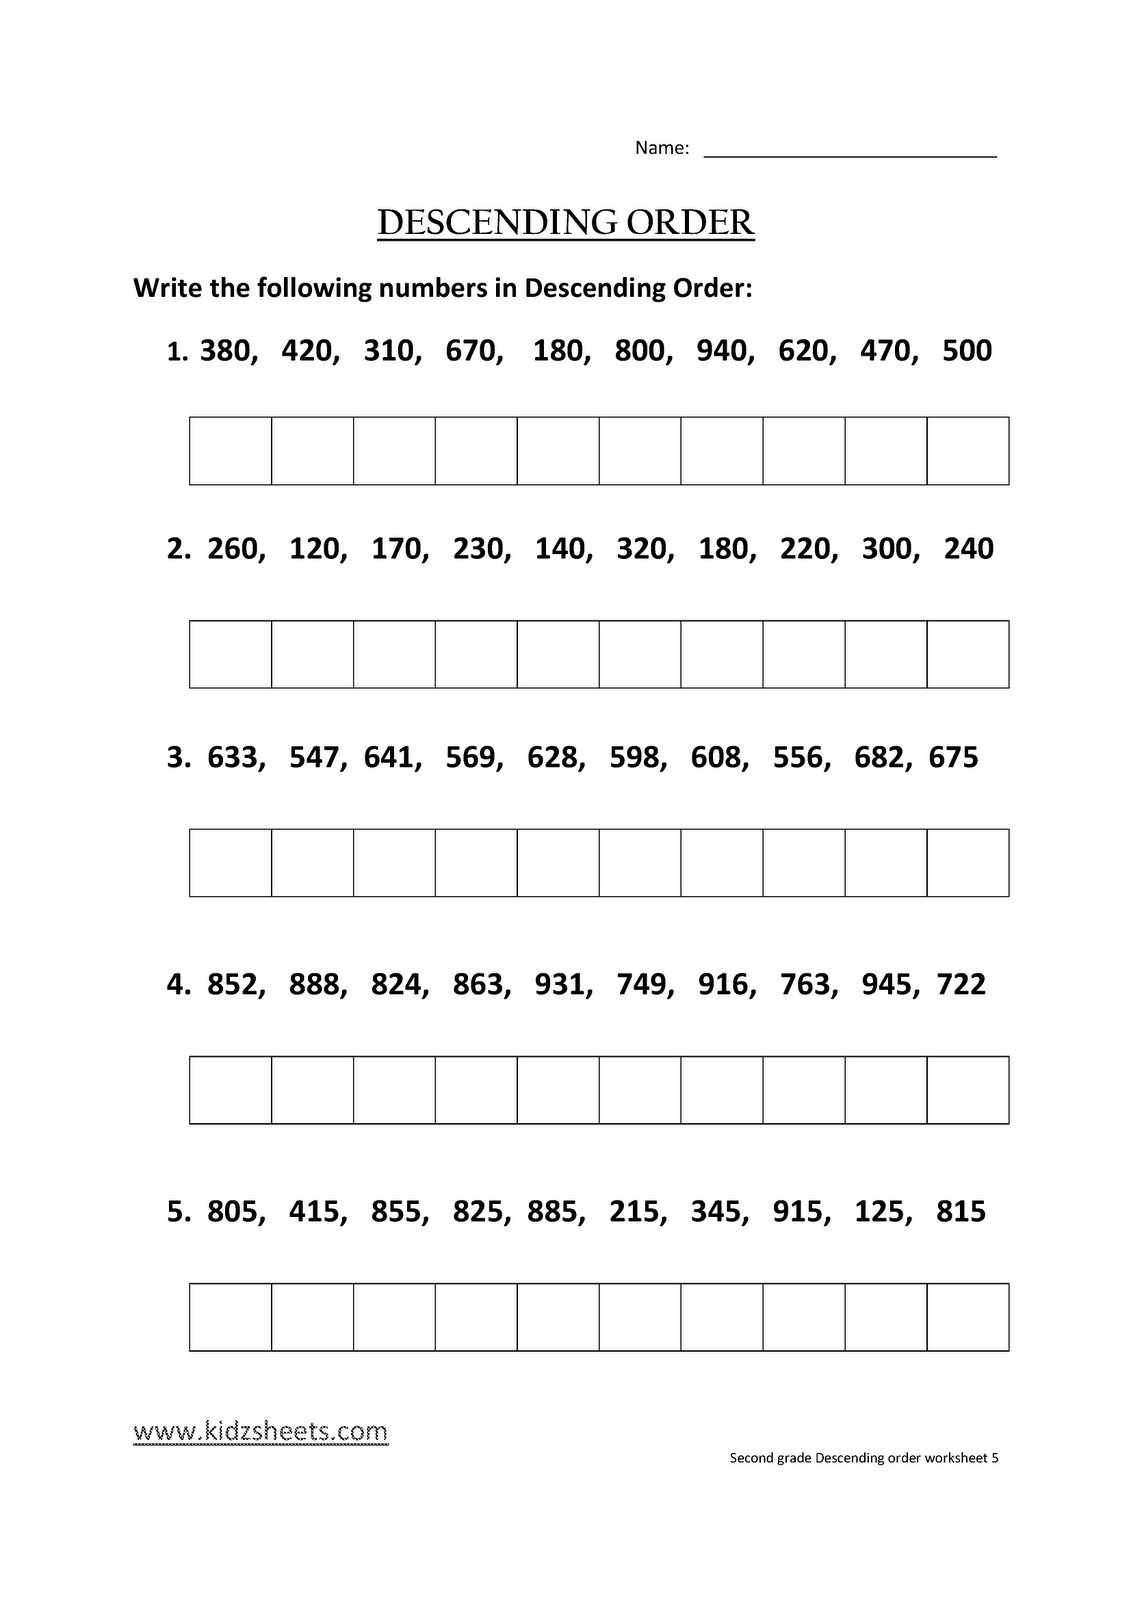 Kidz Worksheets Second Grade Descending Order Worksheet5